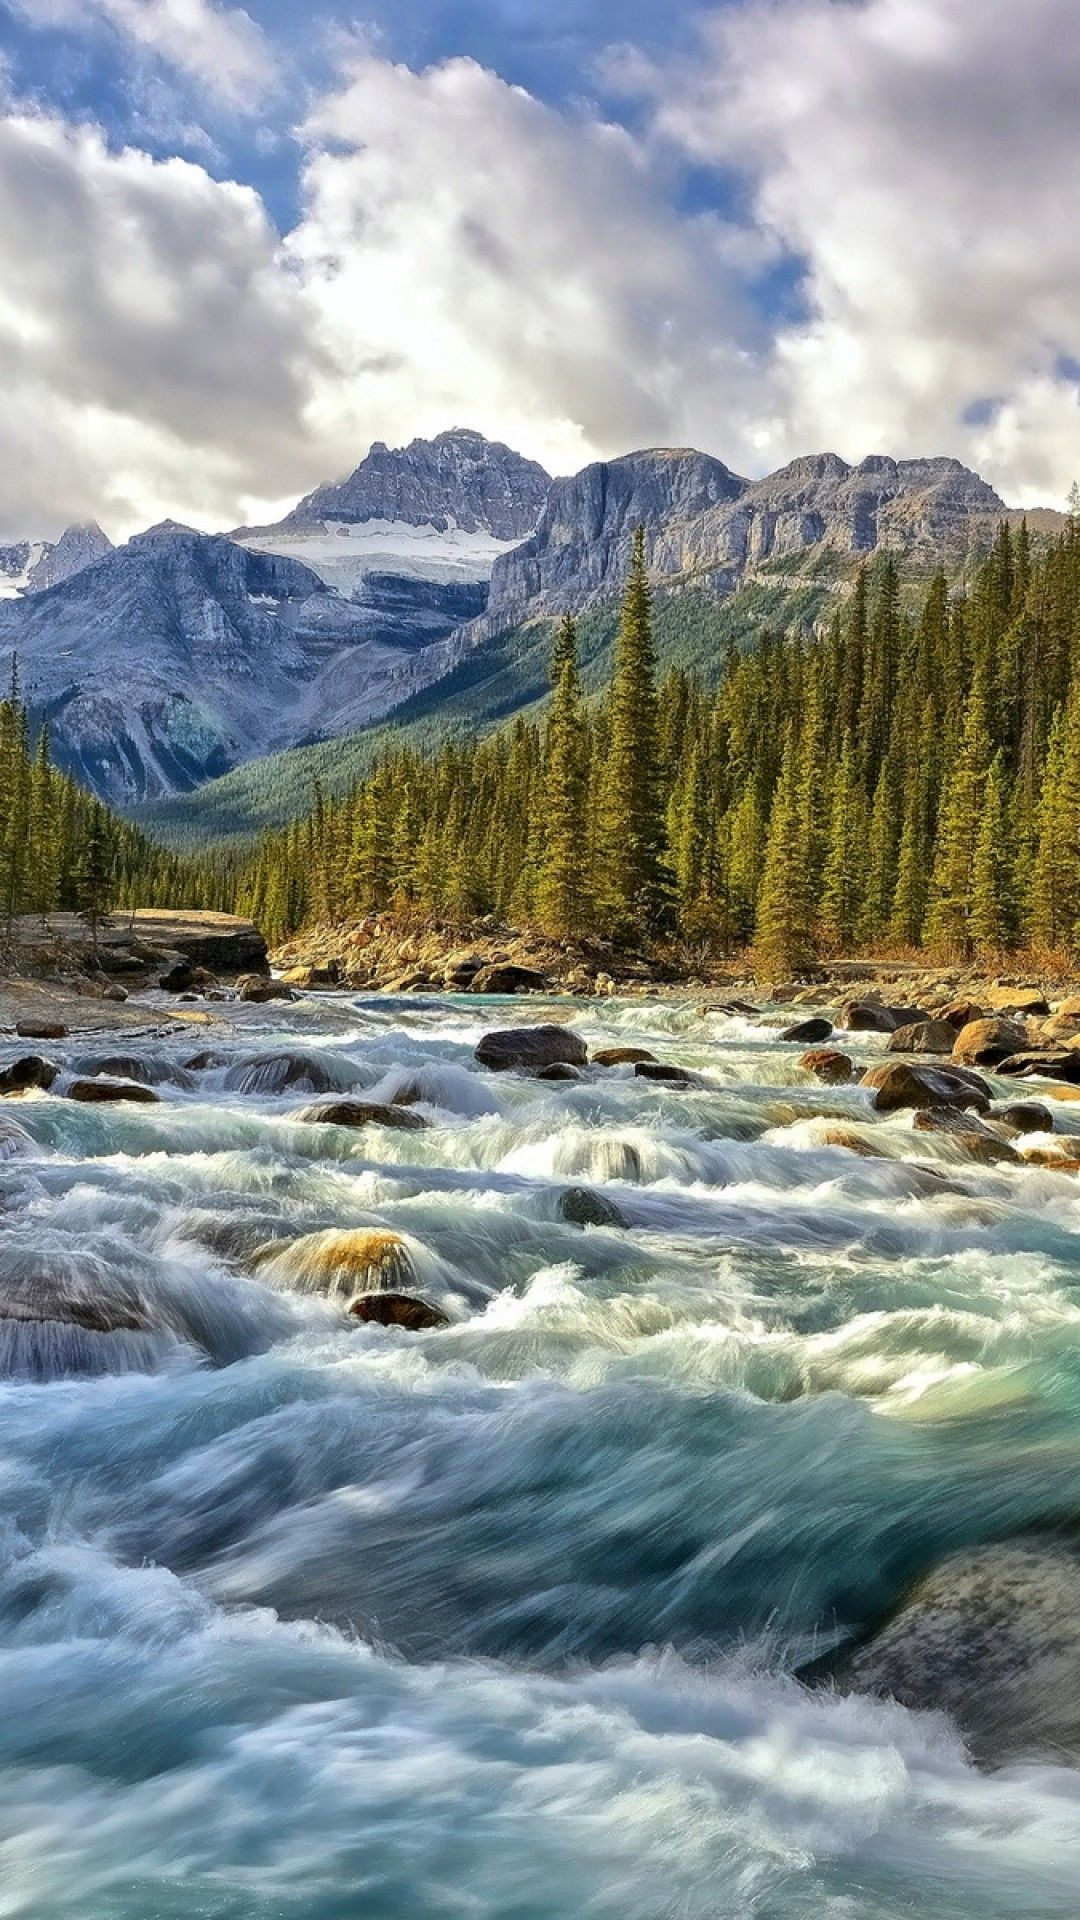 Pictures Of The Wild River Mountains